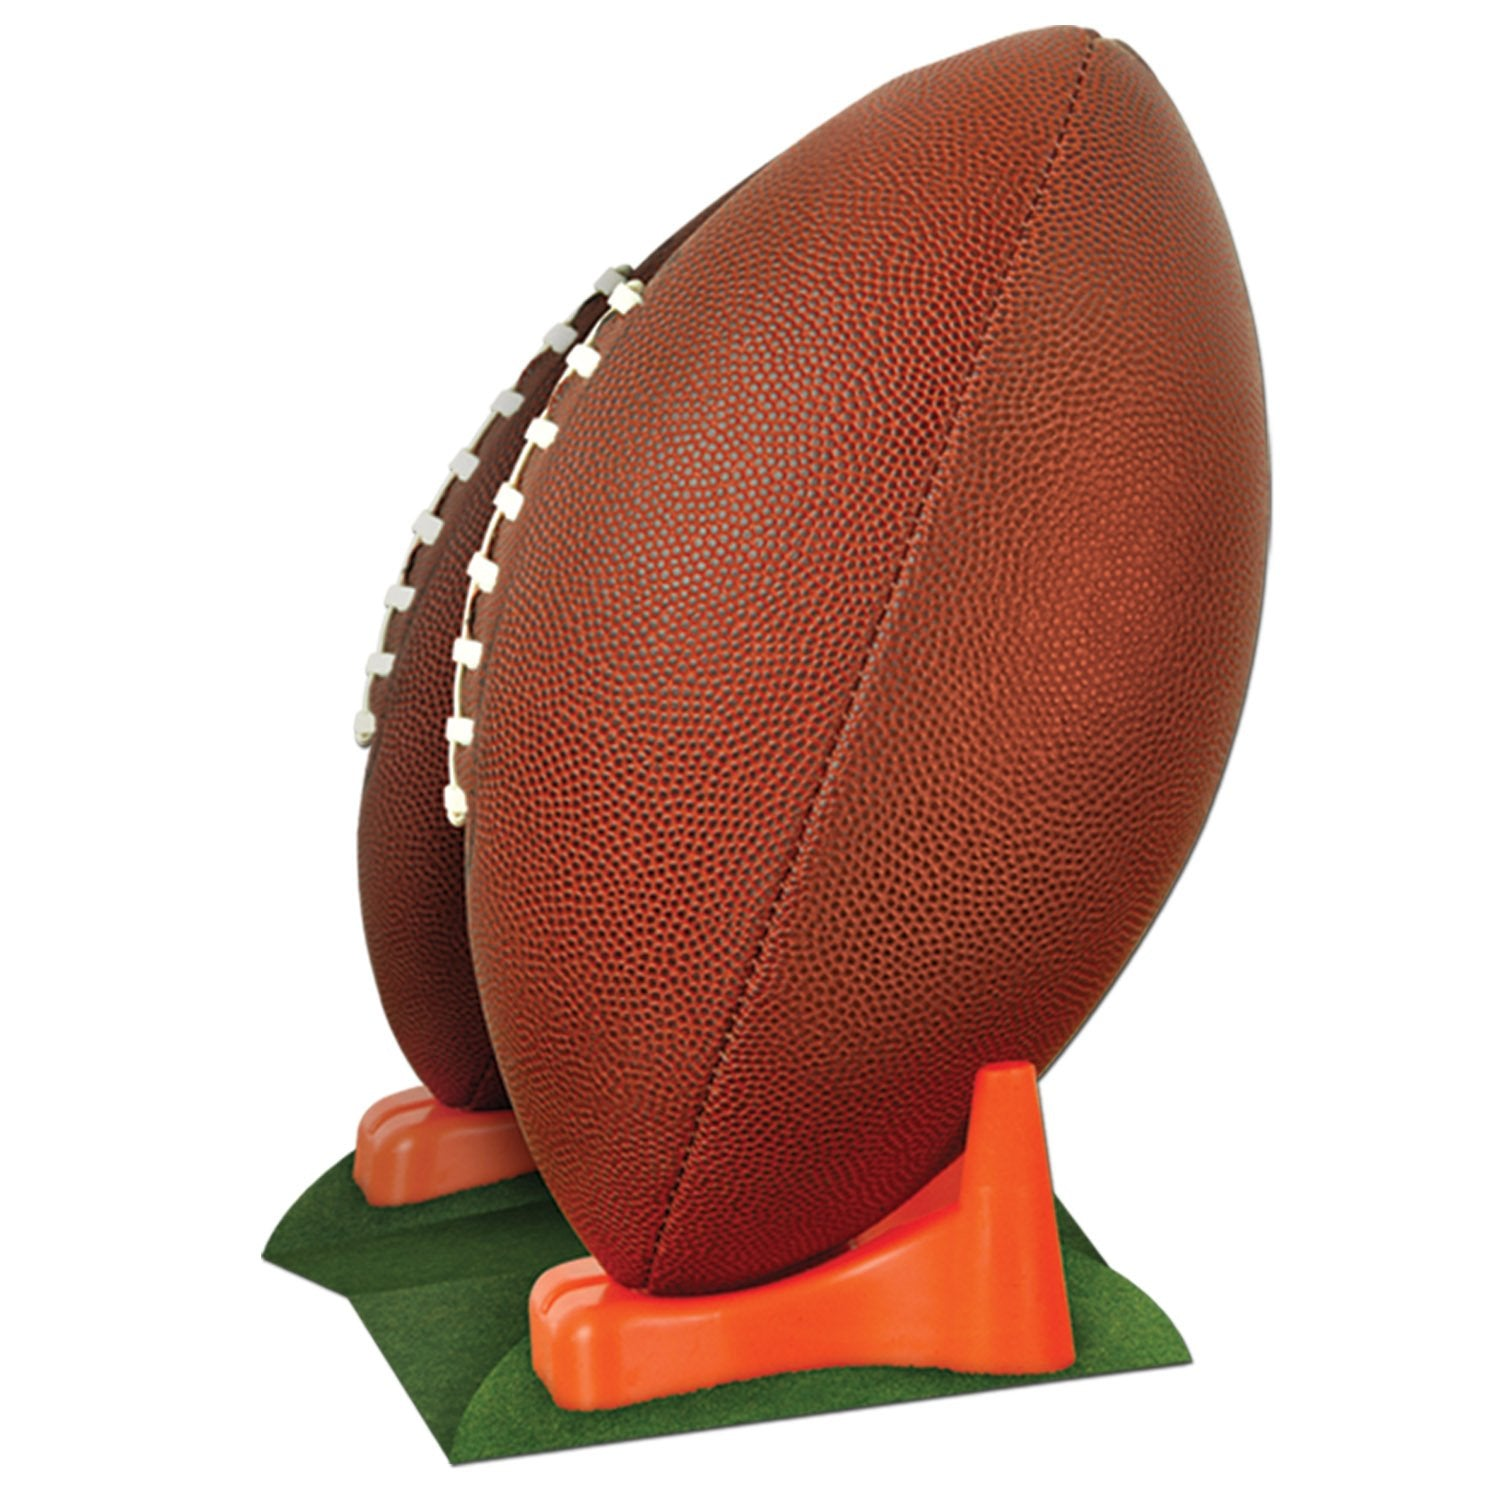 3-D Football Centerpiece 28cm